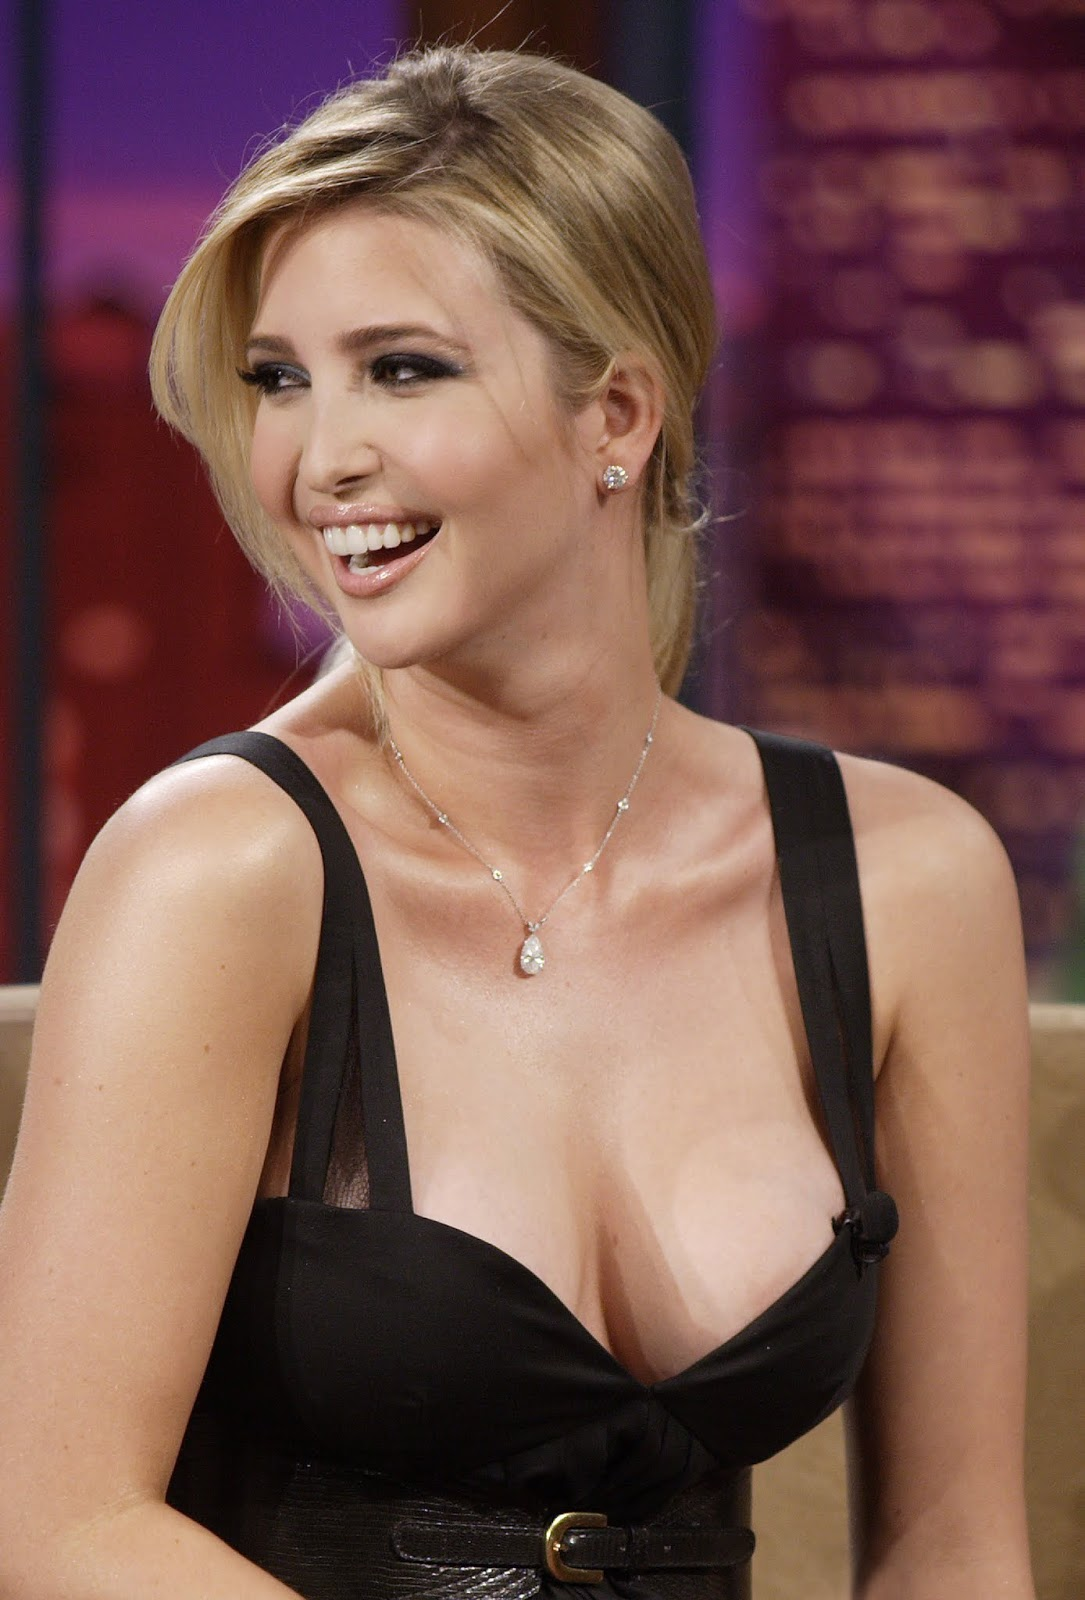 Ivanka Marie Trump is an American businesswoman, socialite, heiress, and fashion model.